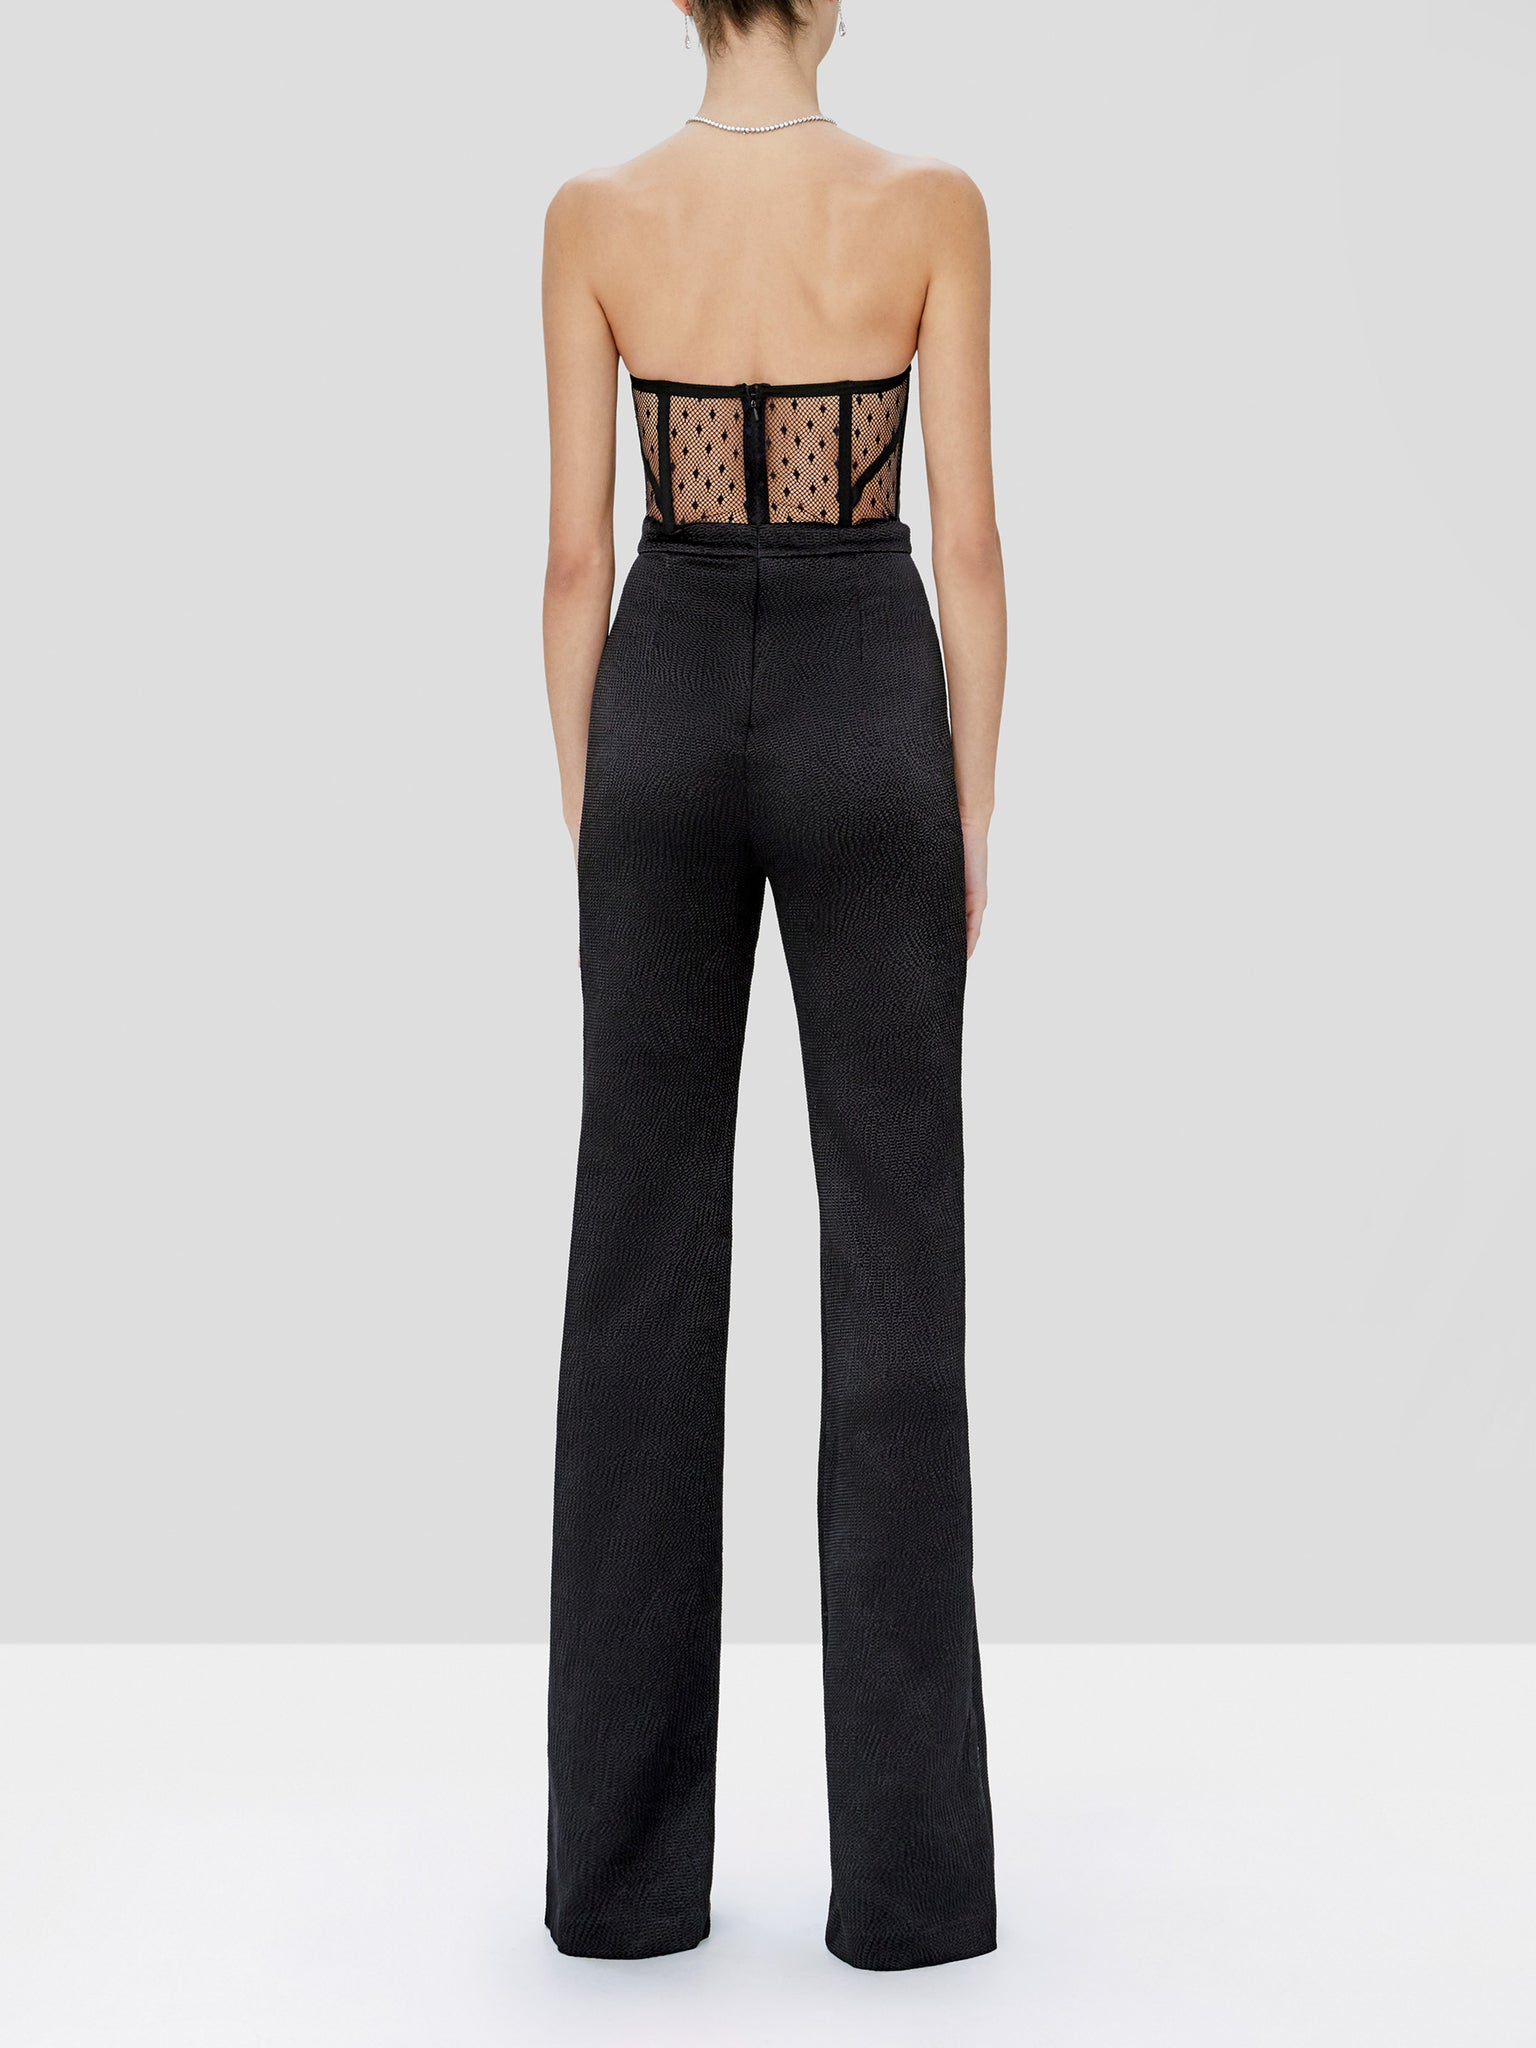 Lauren jumpsuit in black - Rear View